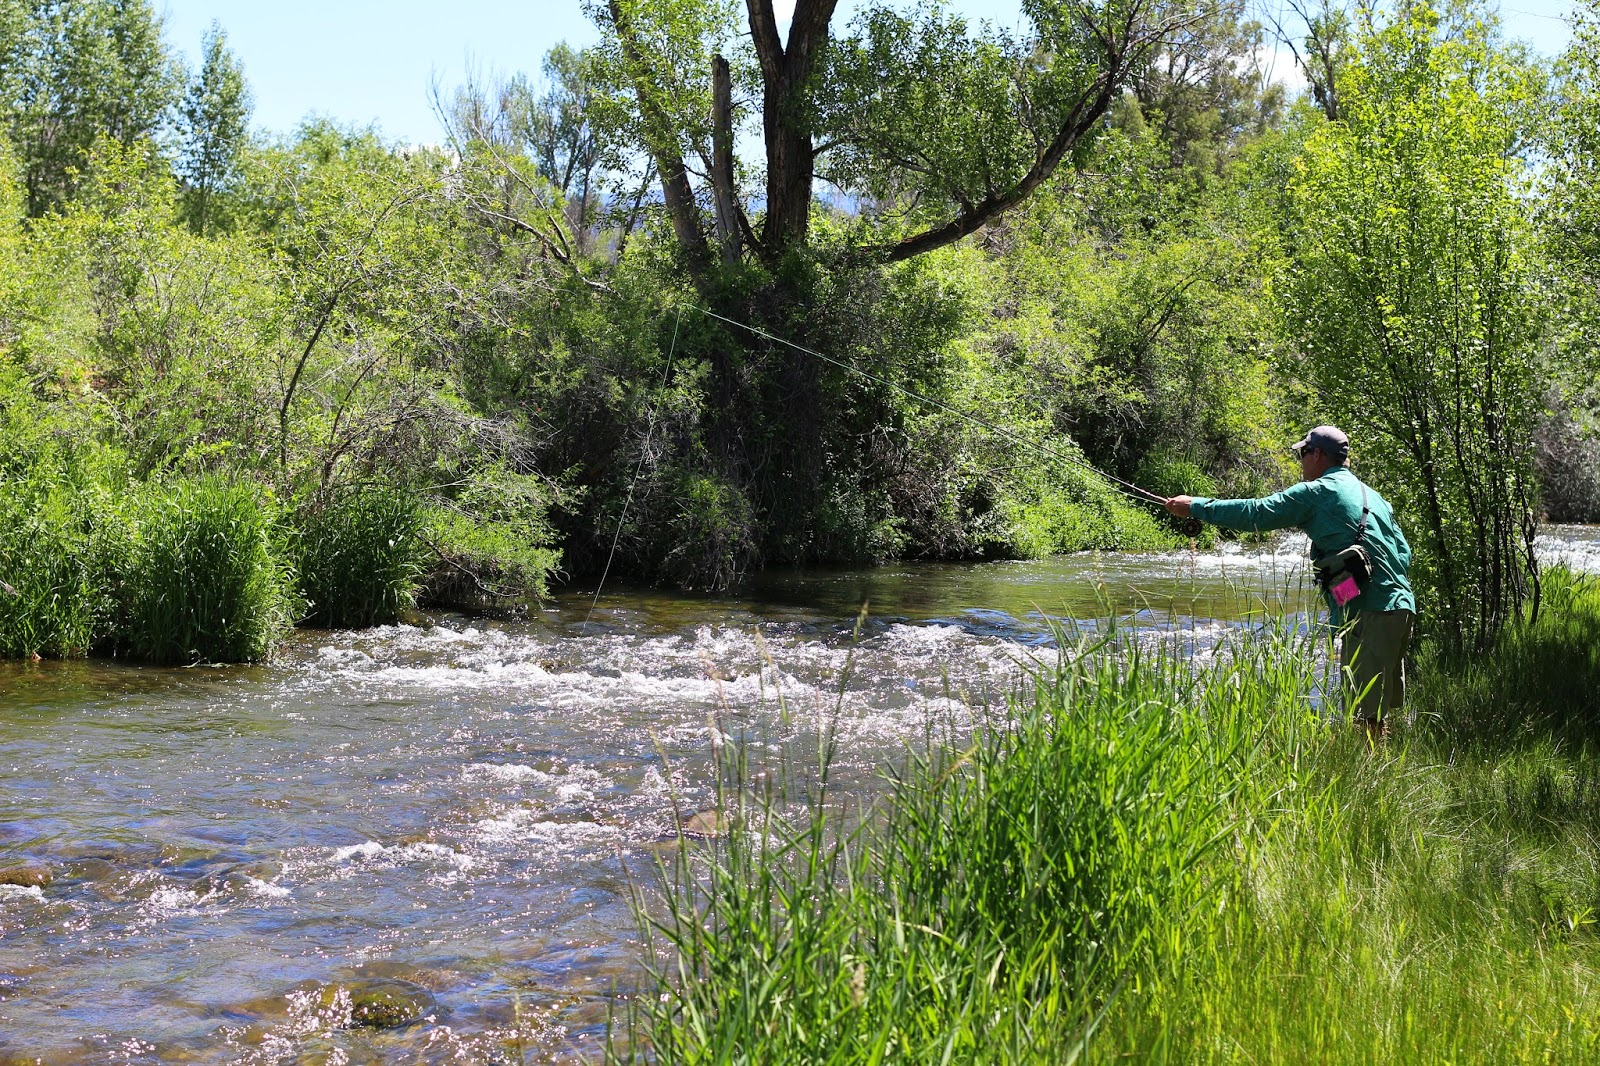 Roaring+Fork+High+Water+Photo+in+Colorado+with+Jay+Scott+Outdoors+4.JPG